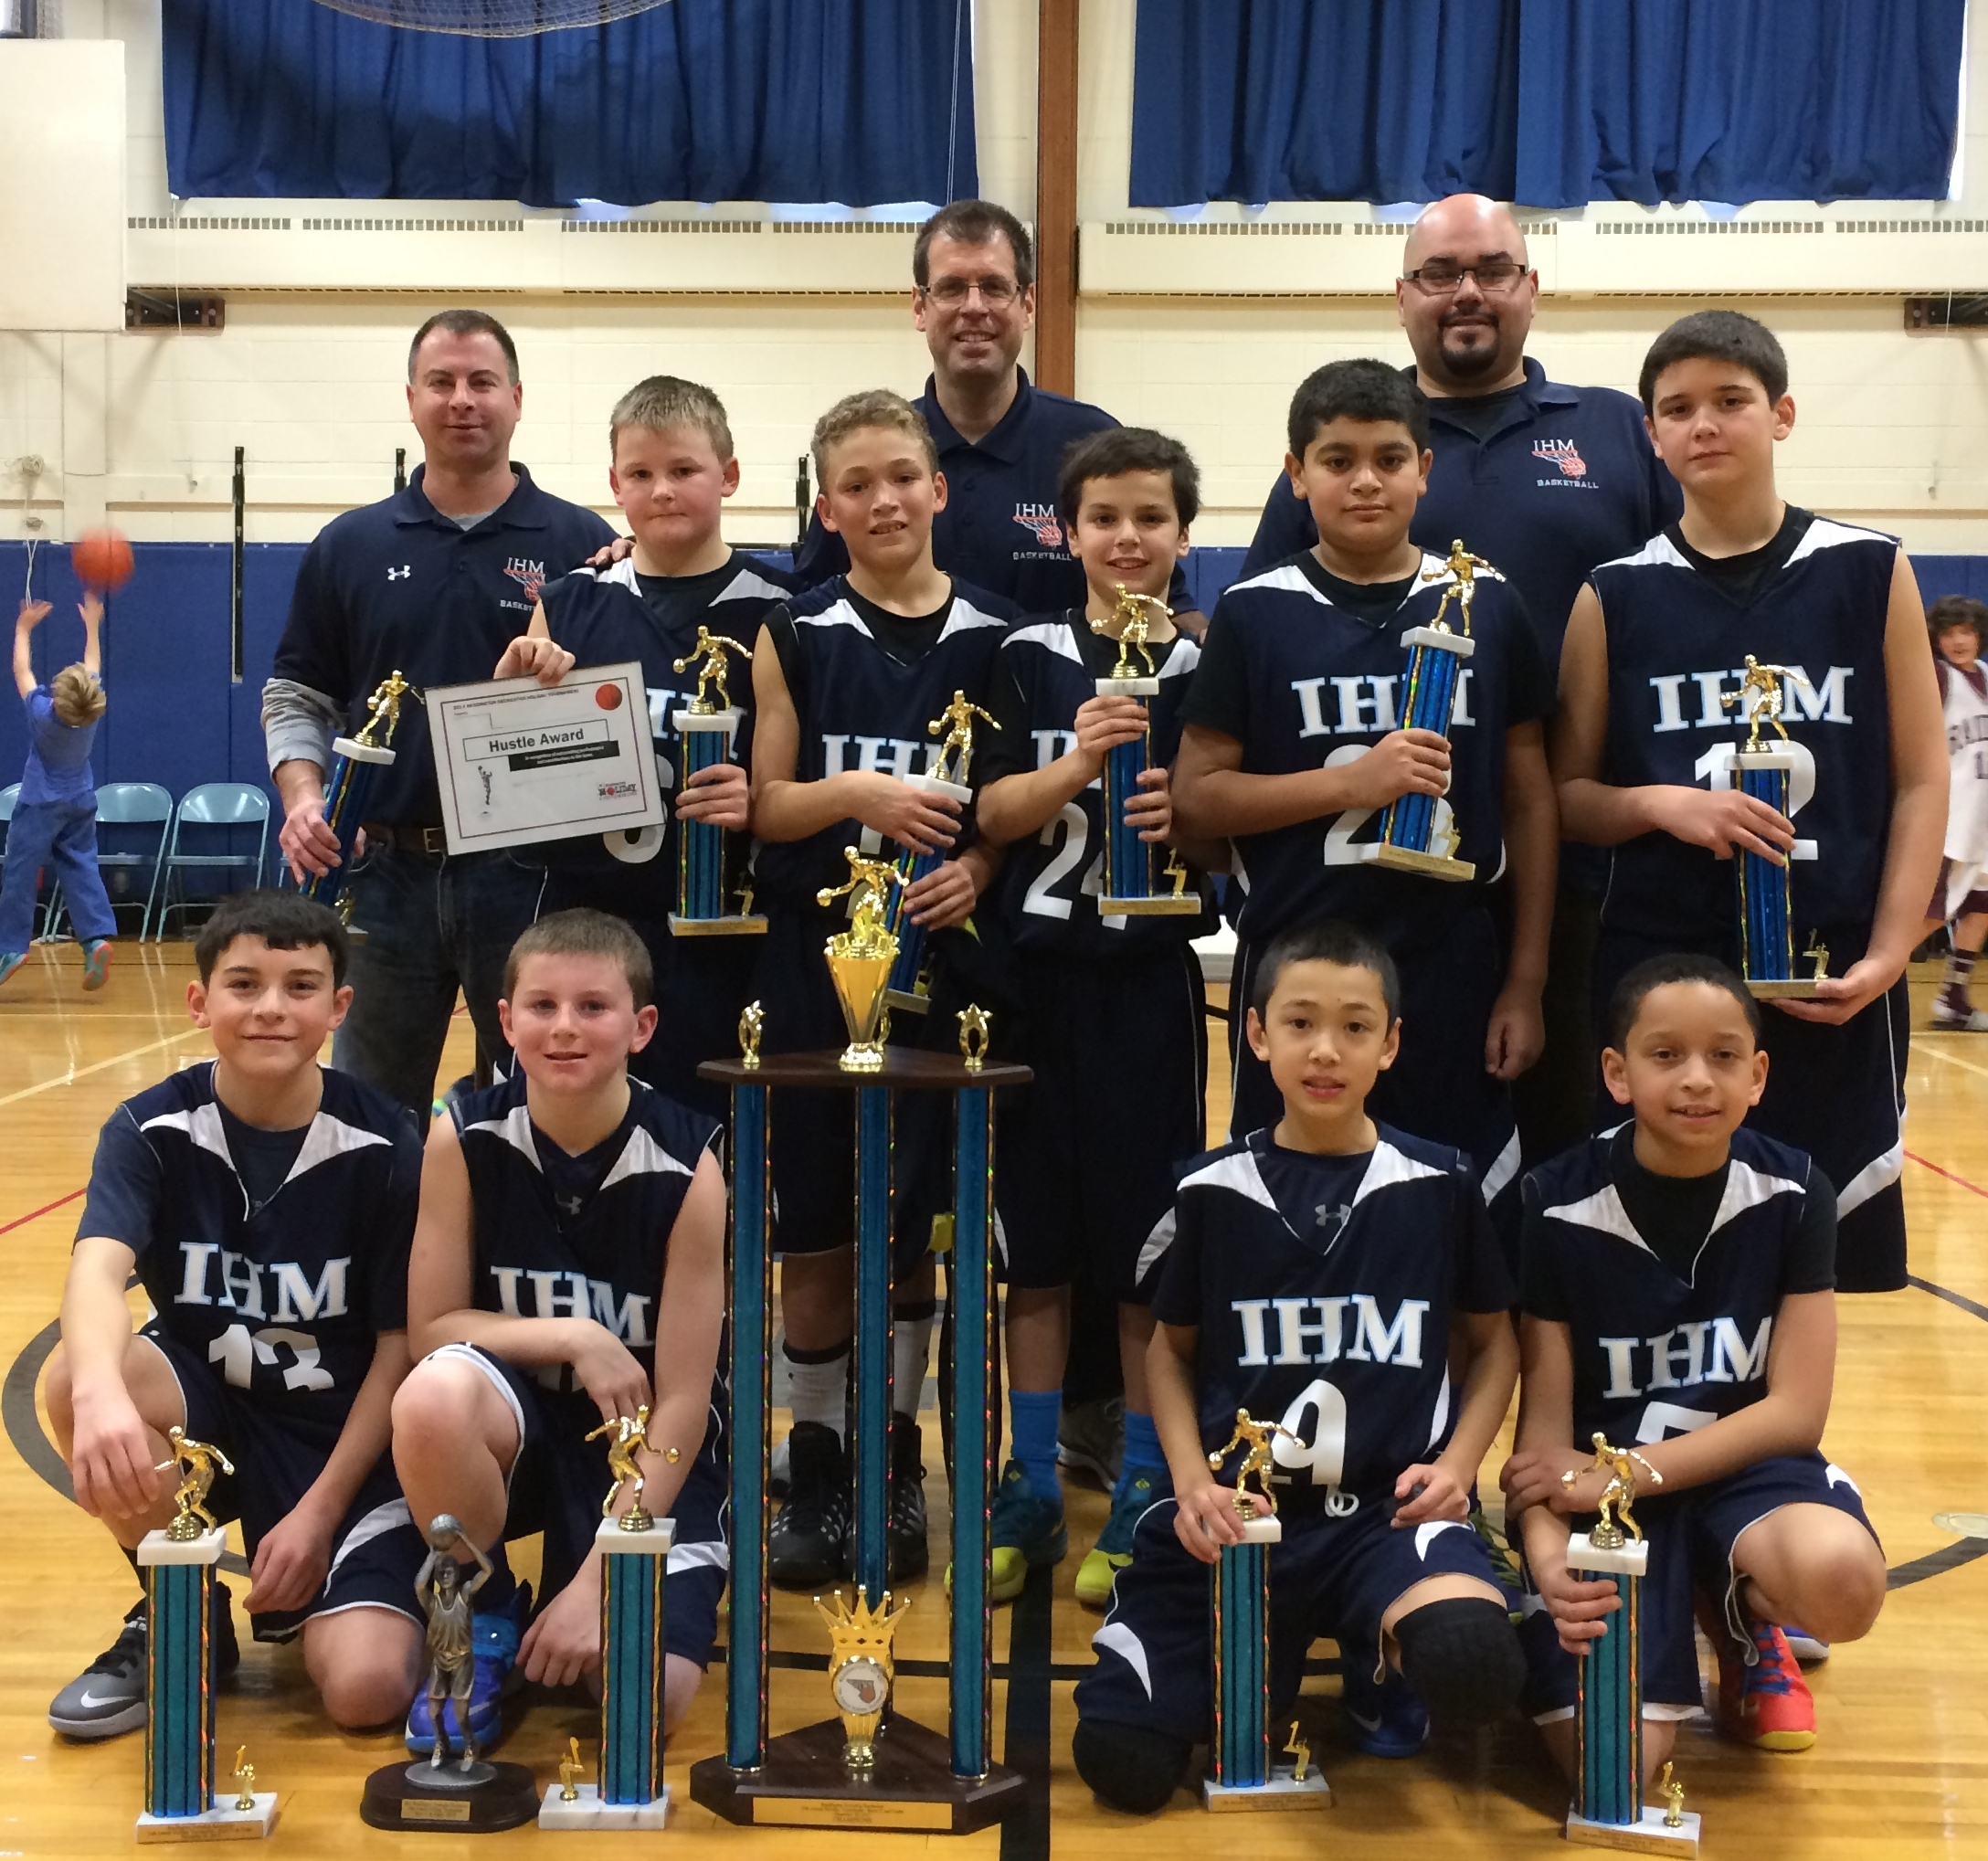 6ab08847f07602afd0c2_IHM_5th_Grade_Holiday_Tourney_Champs.jpg